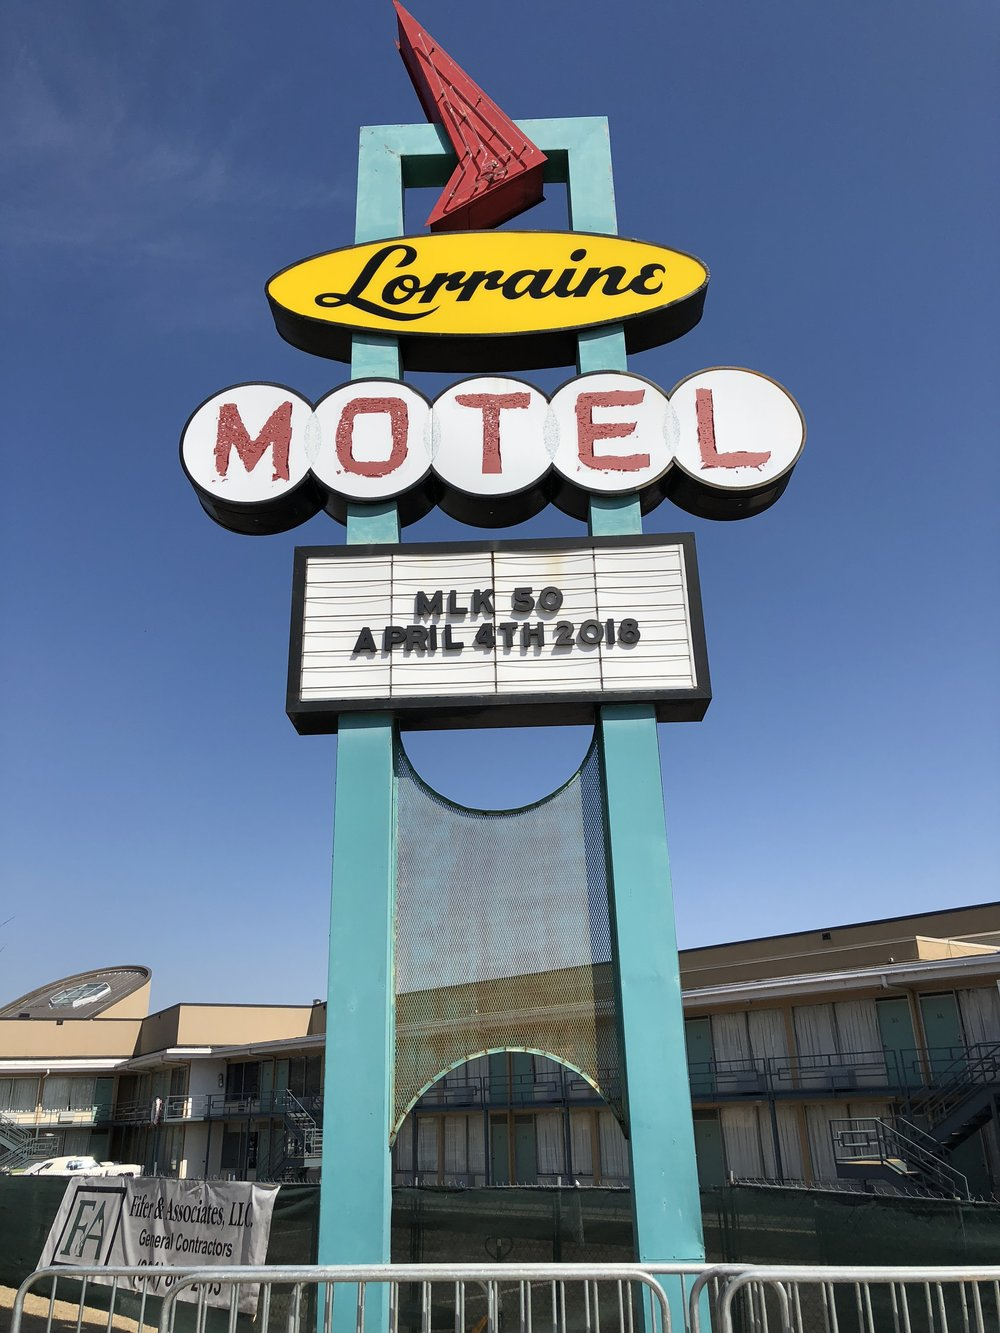 The Lorraine Motel sign